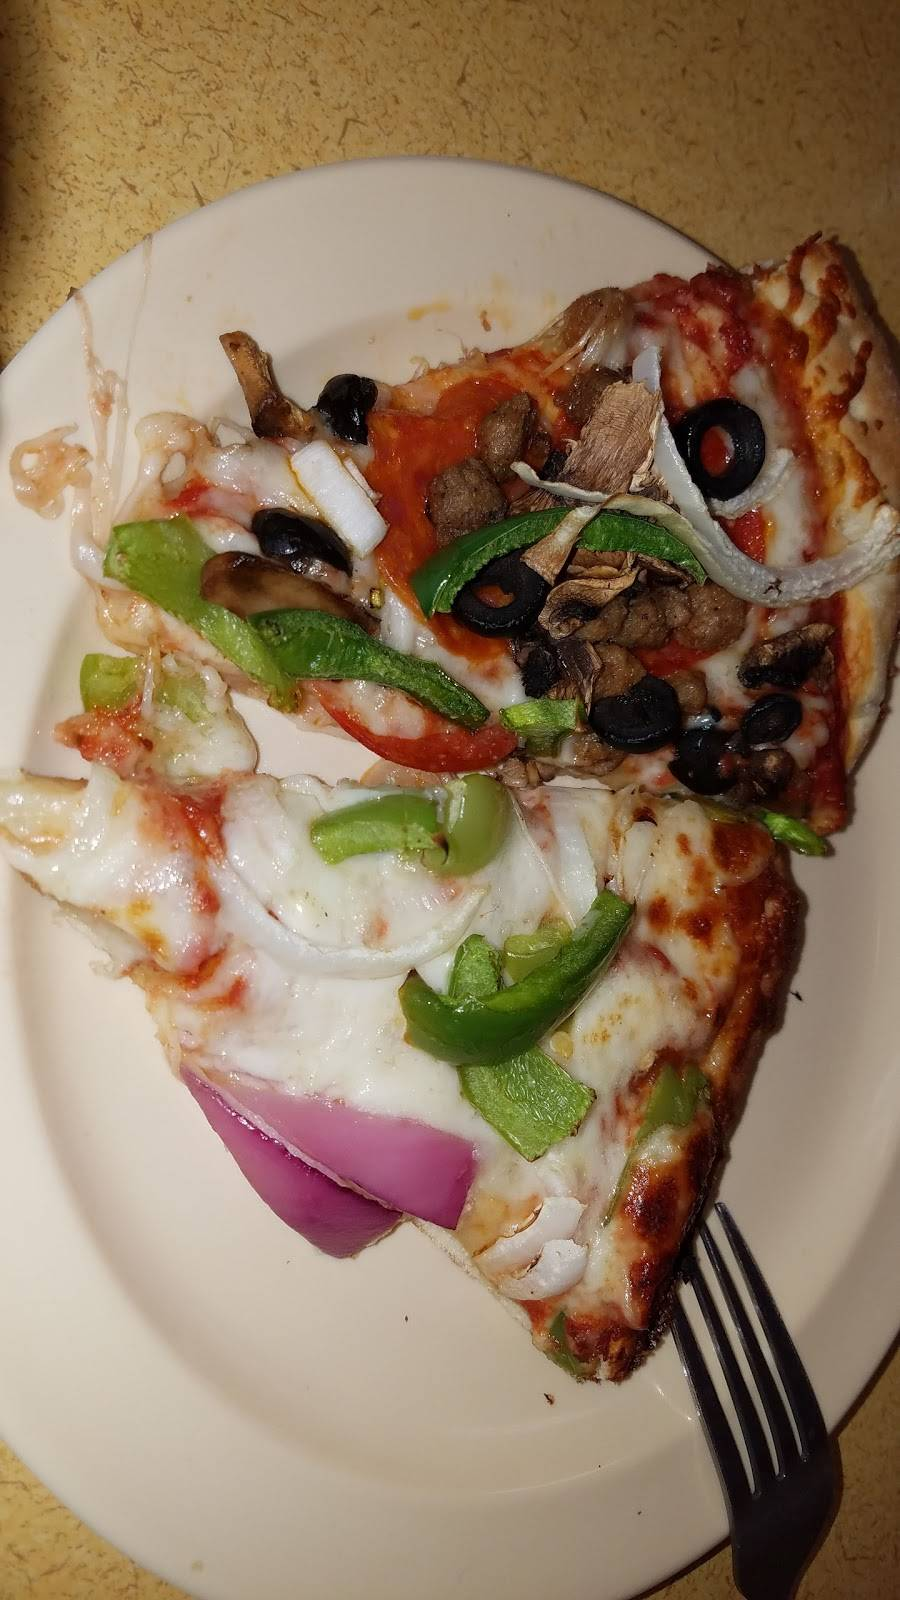 Excellent The Pizza Buffet Restaurant 3208 E Bell Rd Phoenix Az Home Interior And Landscaping Elinuenasavecom